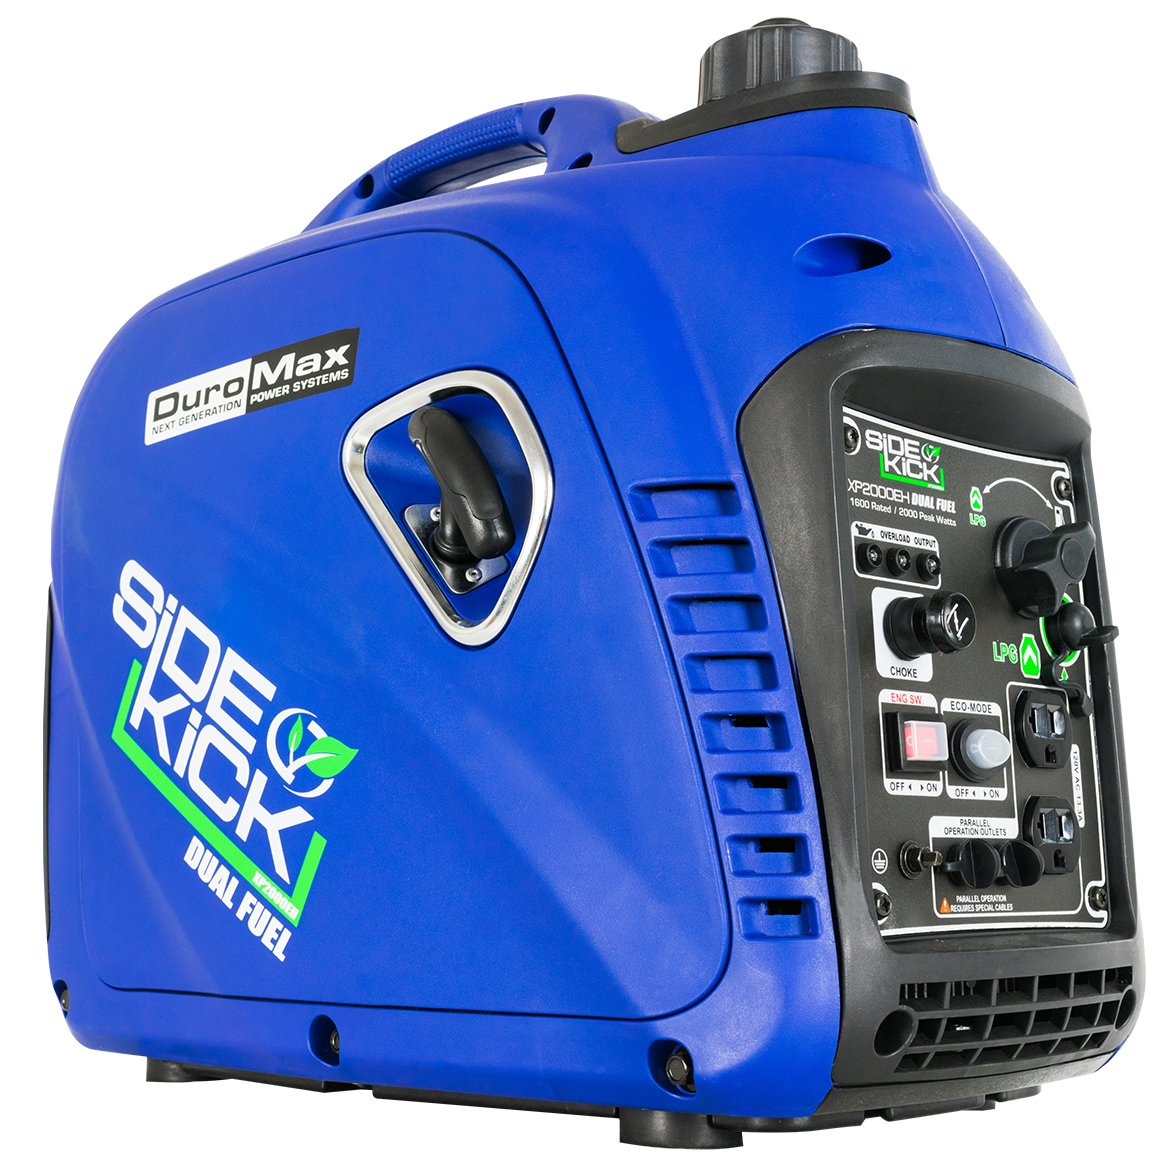 DuroMax XP2000EH Dual Fuel Generator, Blue by DuroMax